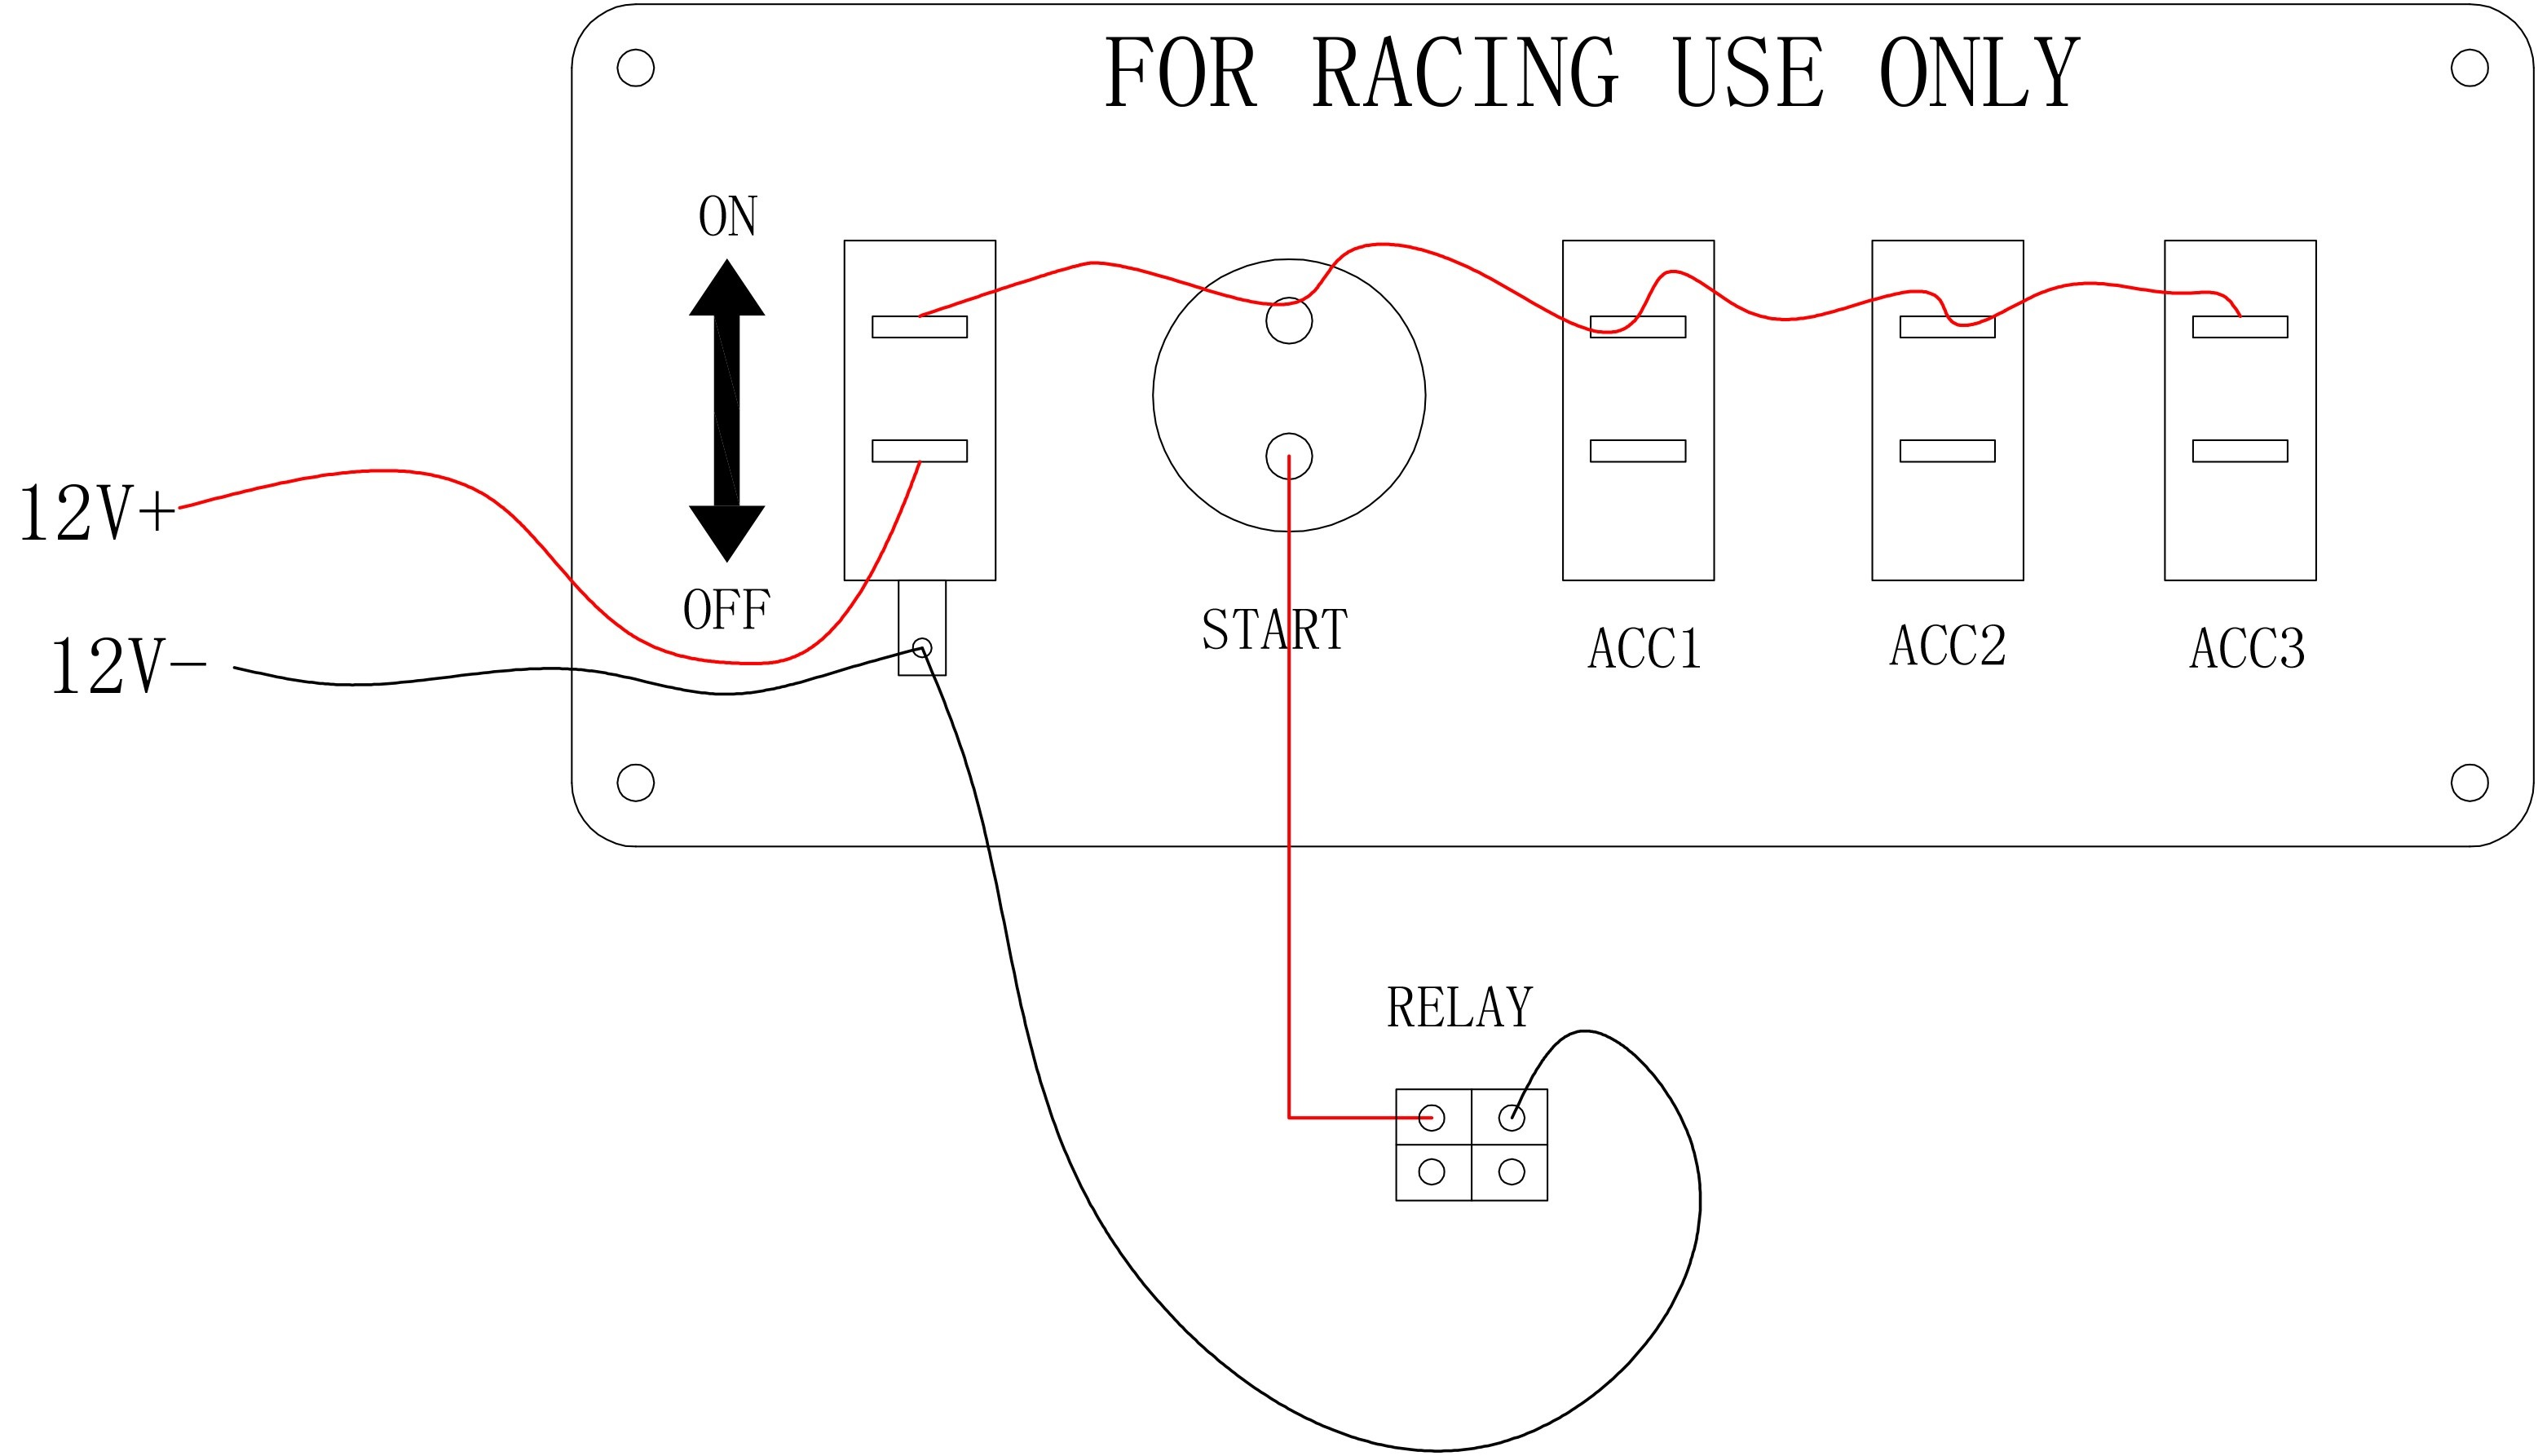 Race Car Switch Panel Wiring Diagram : Pactrade marine racing car ignition switch panel engine